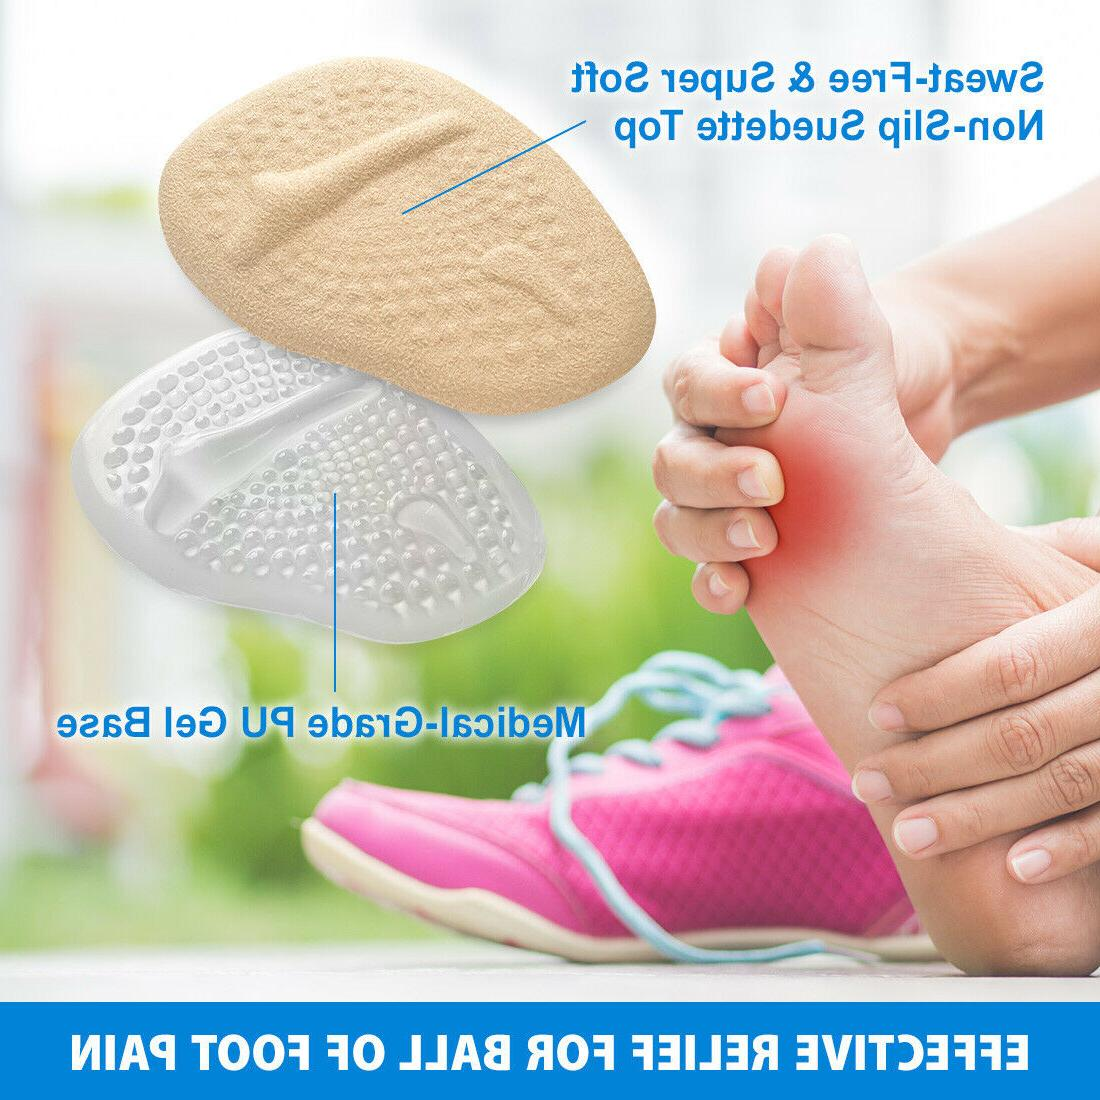 Metatarsal Pads for Women On of Foot Cushions Inserts